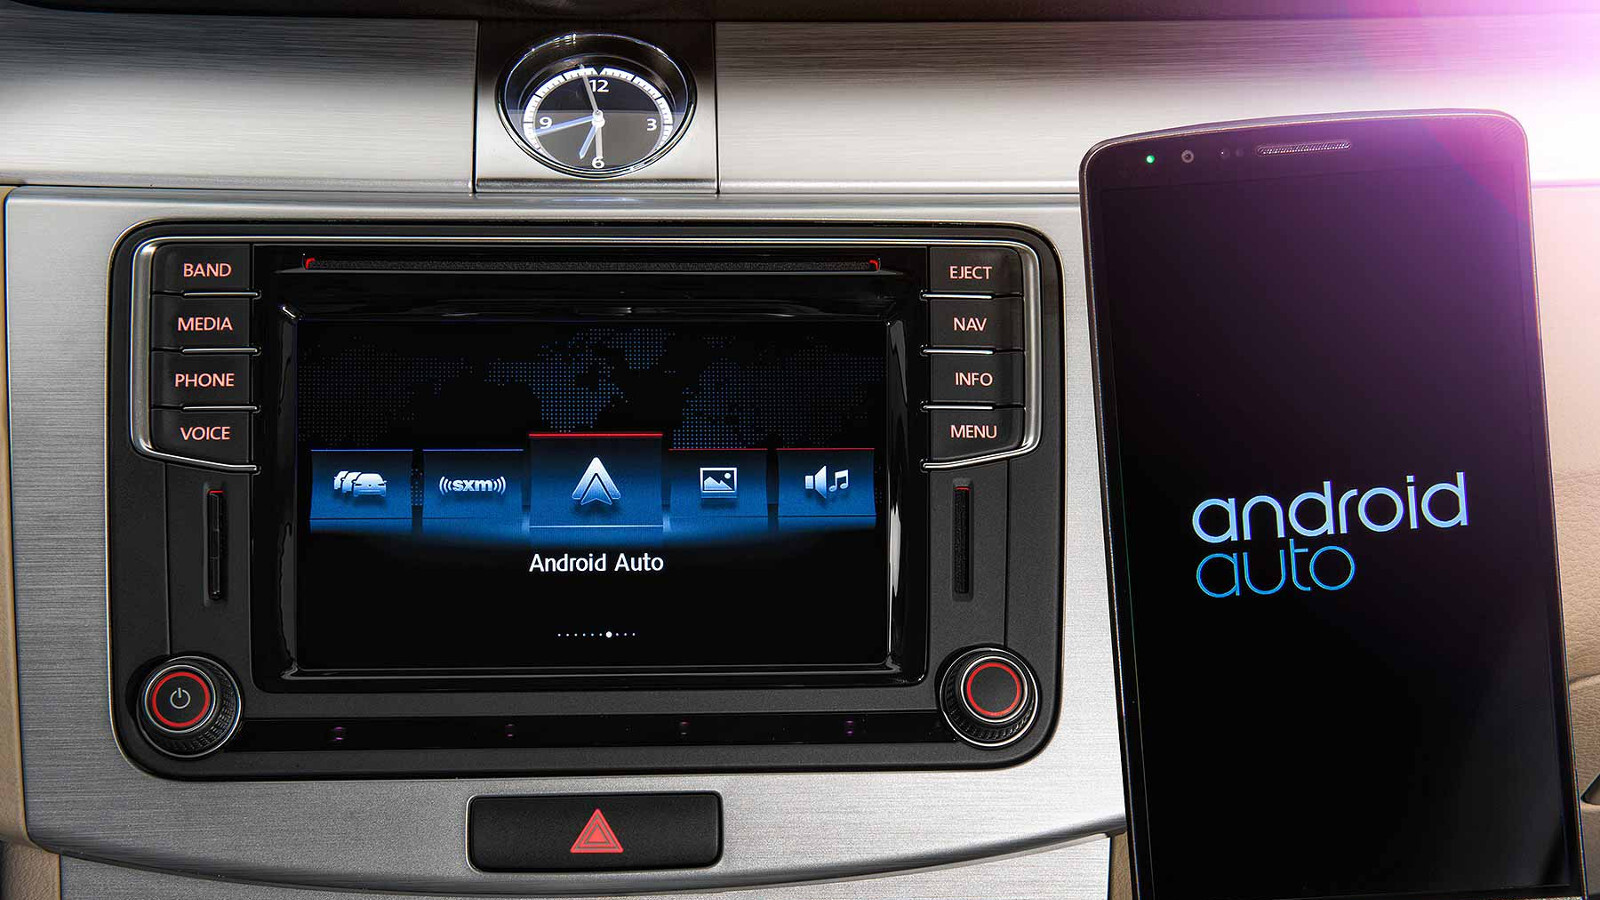 android auto and apple carplay expected to drive future auto sales. Black Bedroom Furniture Sets. Home Design Ideas